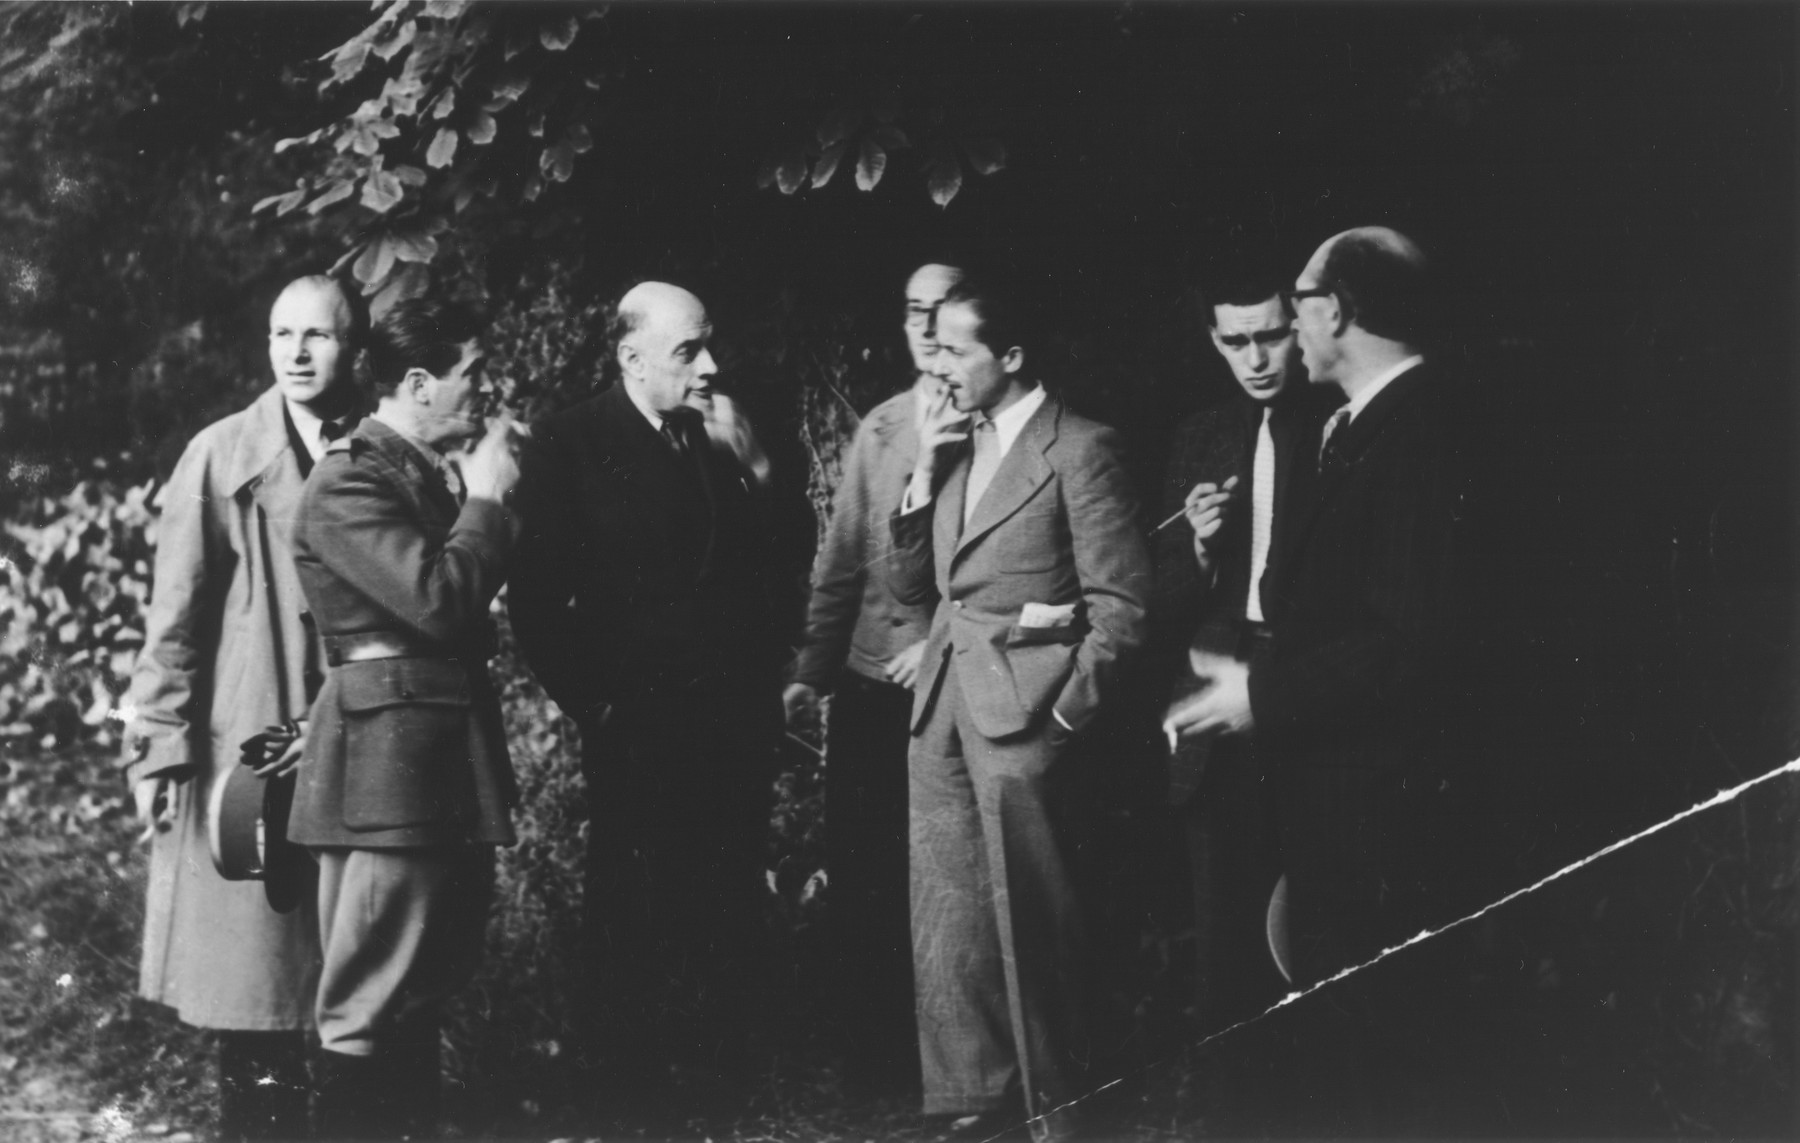 A group of OSE (Oeuvre de Secours aux Enfants) directors meet in the Ecouis children's home.  Among those pictured are: Georges Garel (center), M. Schifman (far left) and Captain Rozen (second from the left).